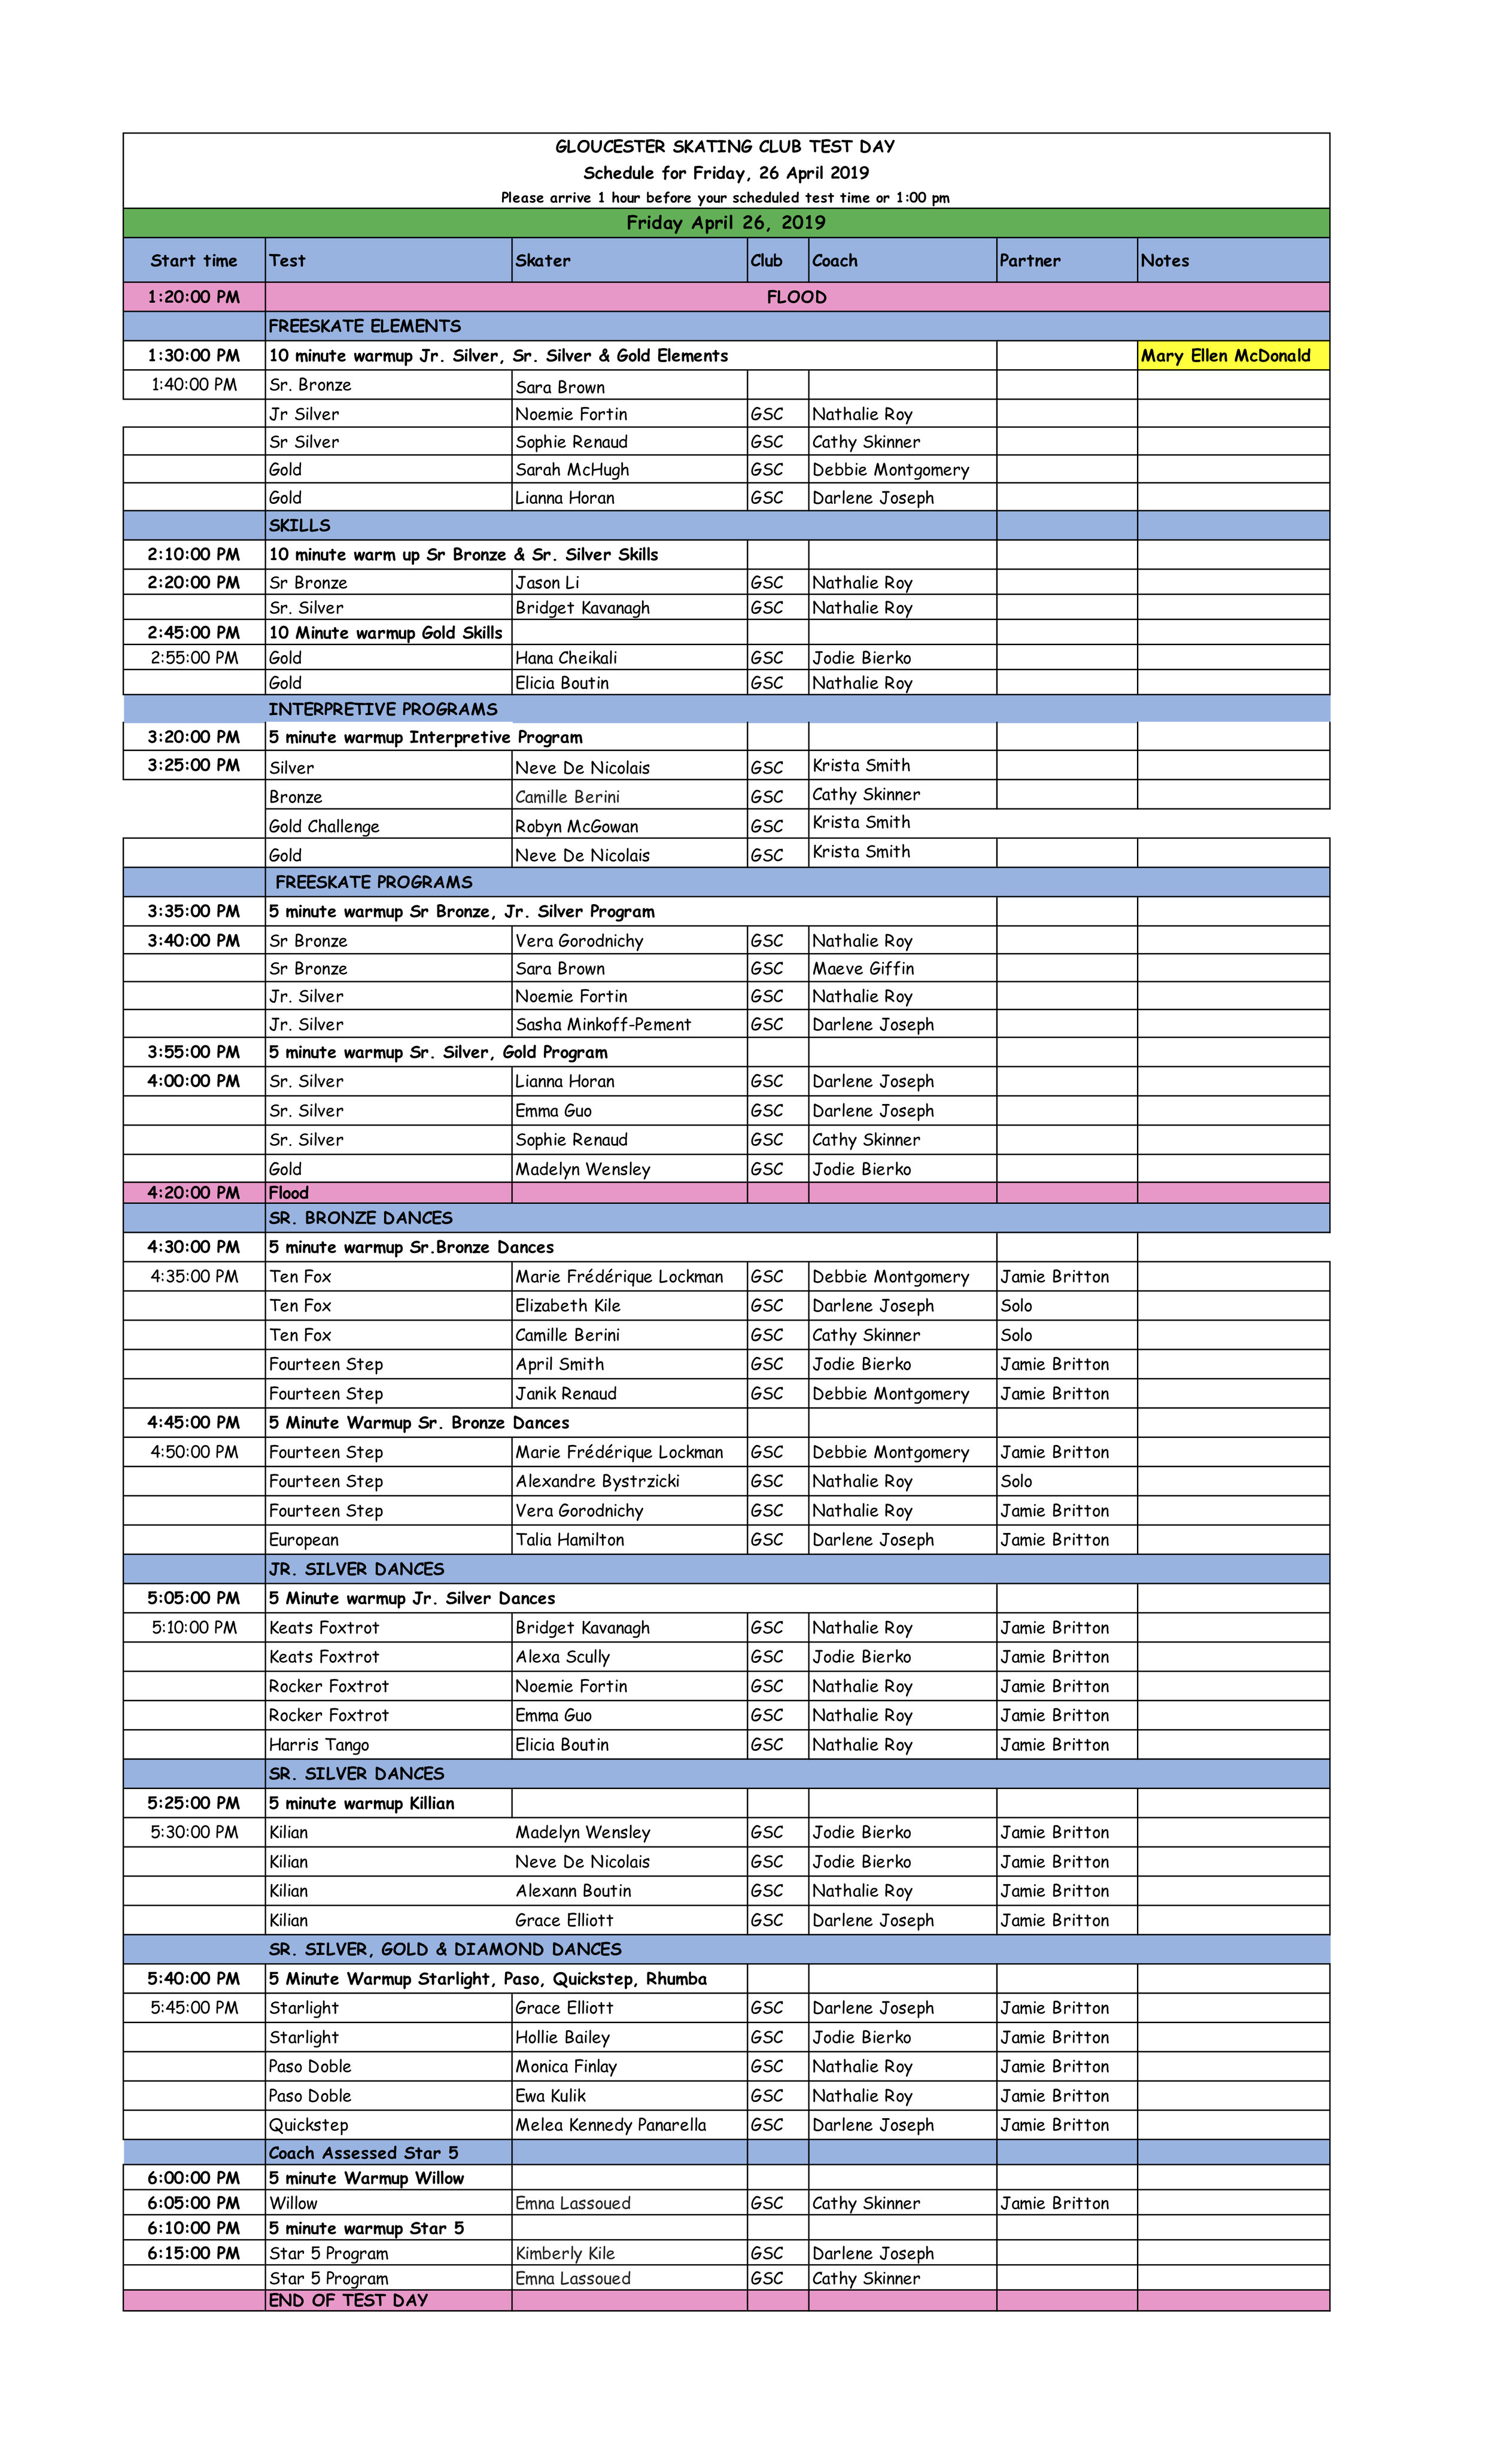 Gloucester 26 April 2019 Test Day Schedule.jpg